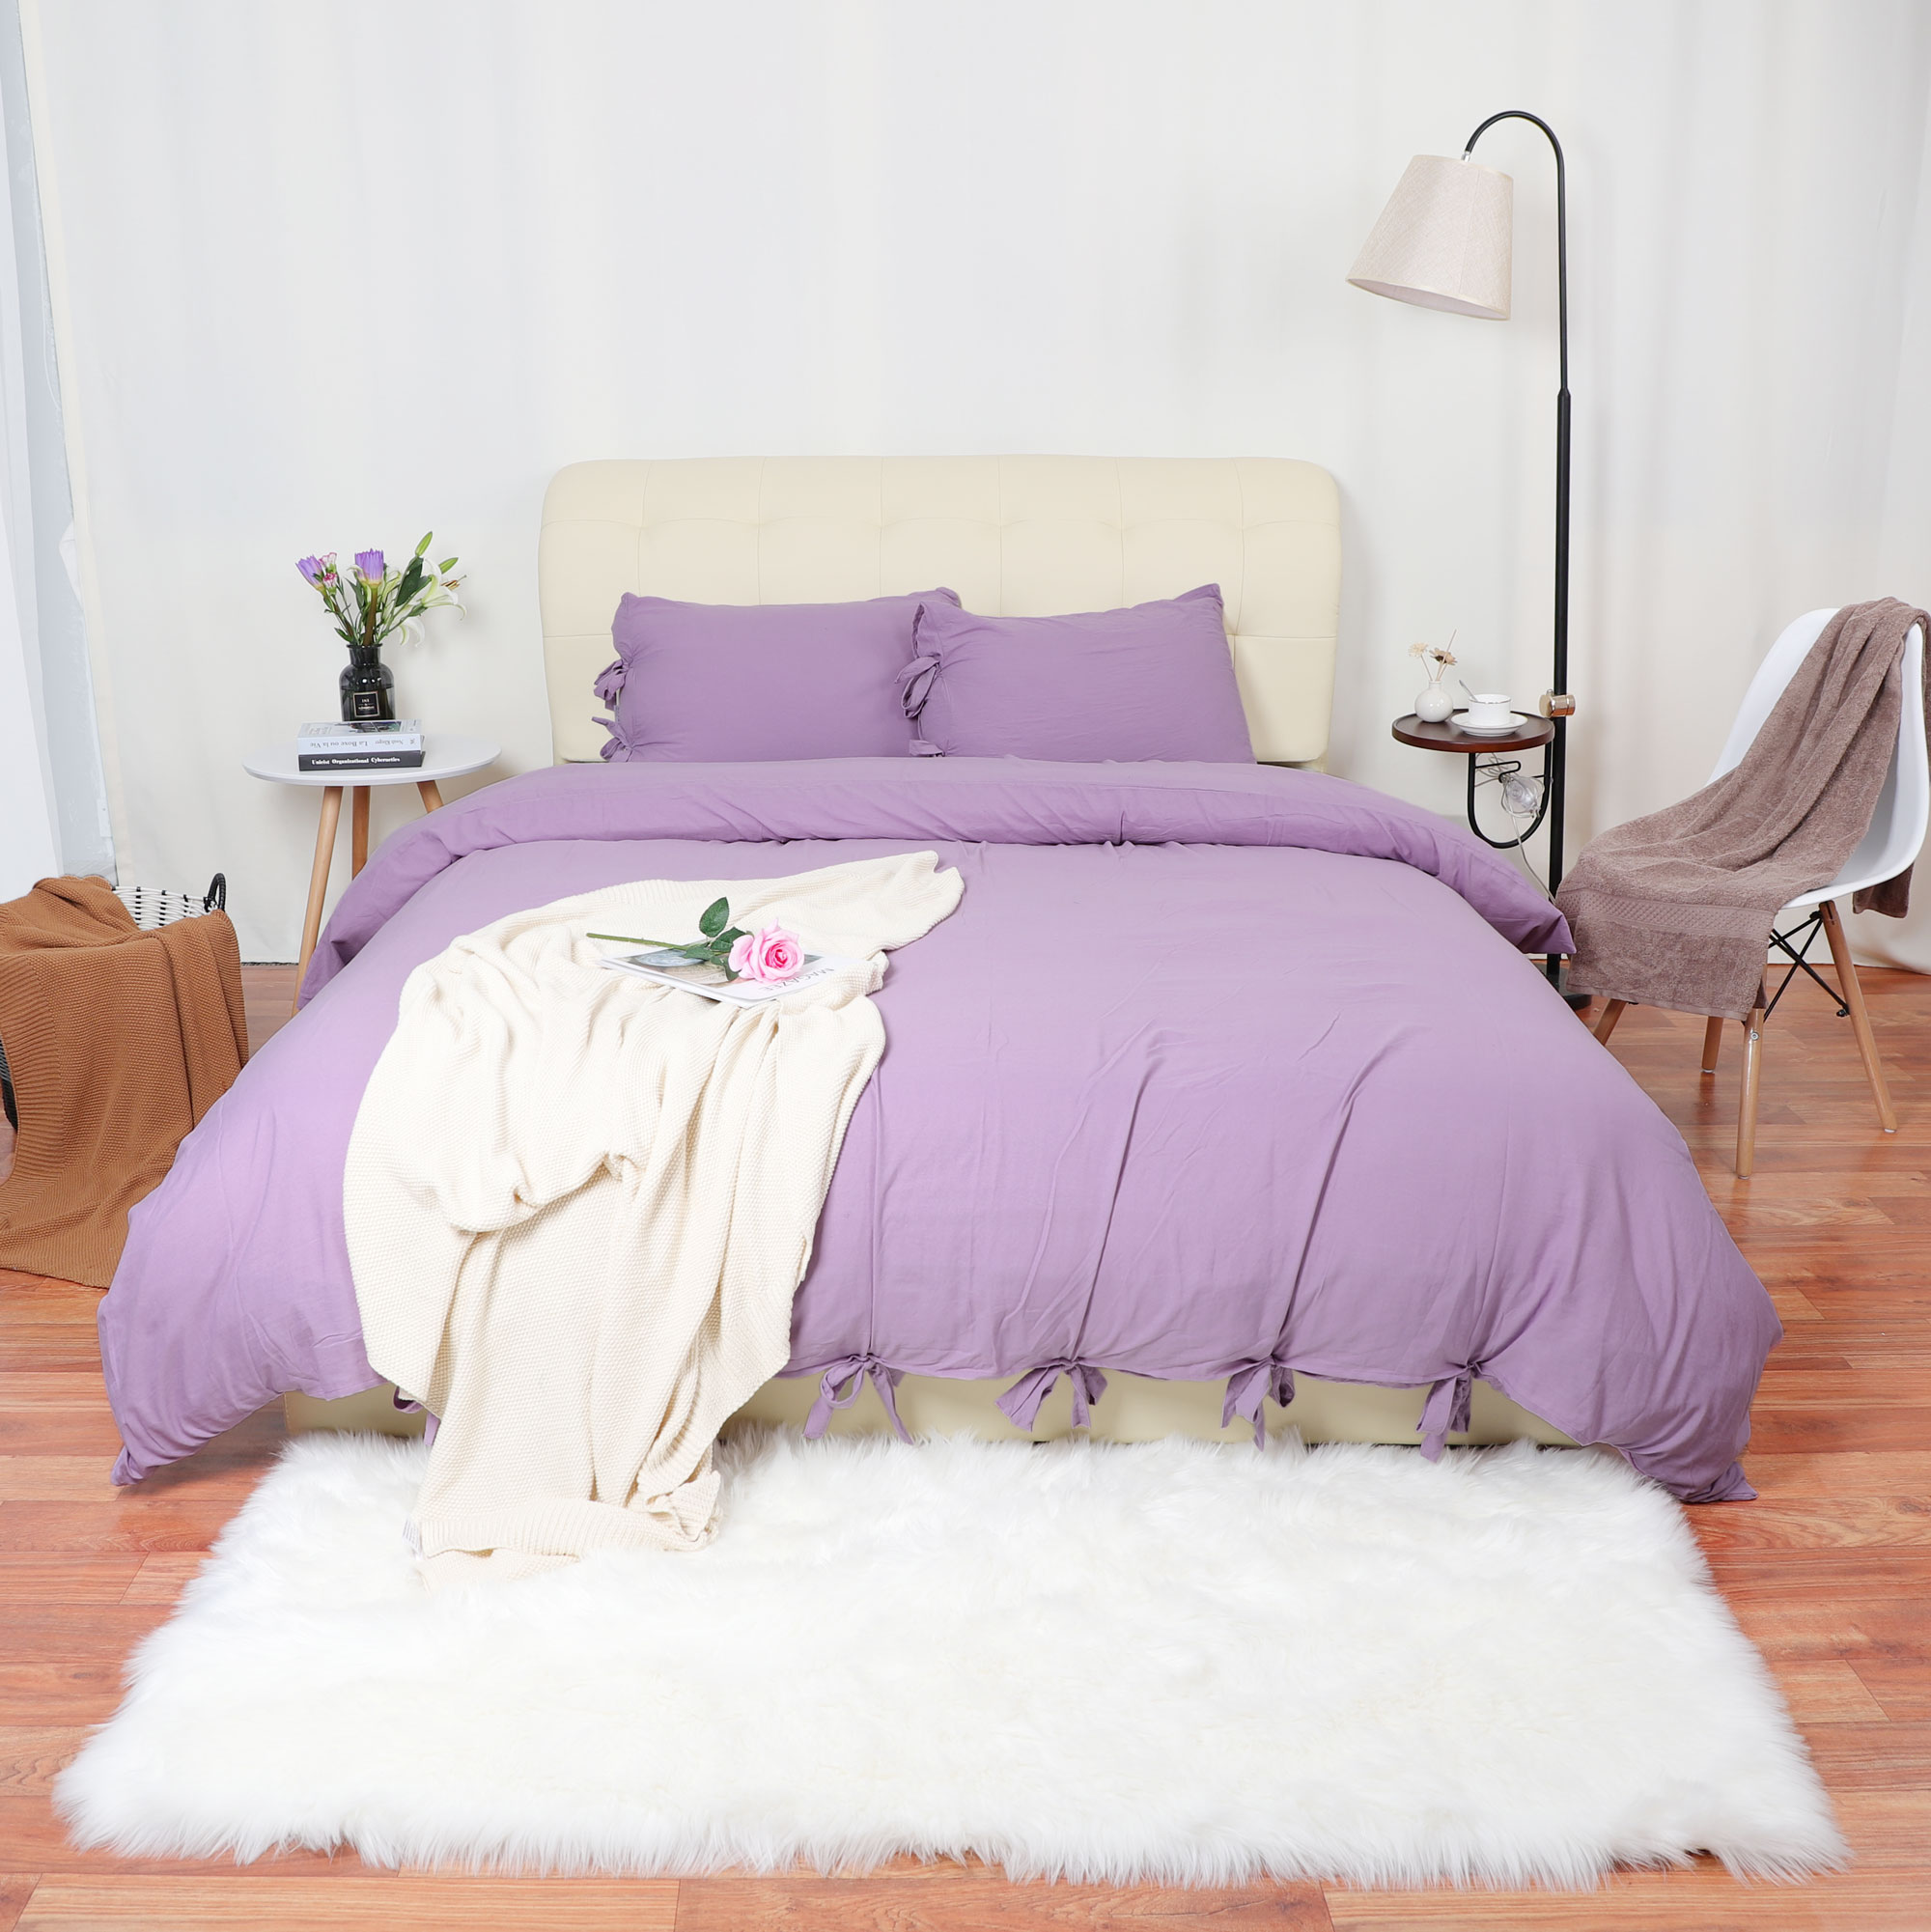 Duvet Cover And Shams Egyptian Comfort 1800 Count Bedding Set Light Purple Queen - image 6 of 8